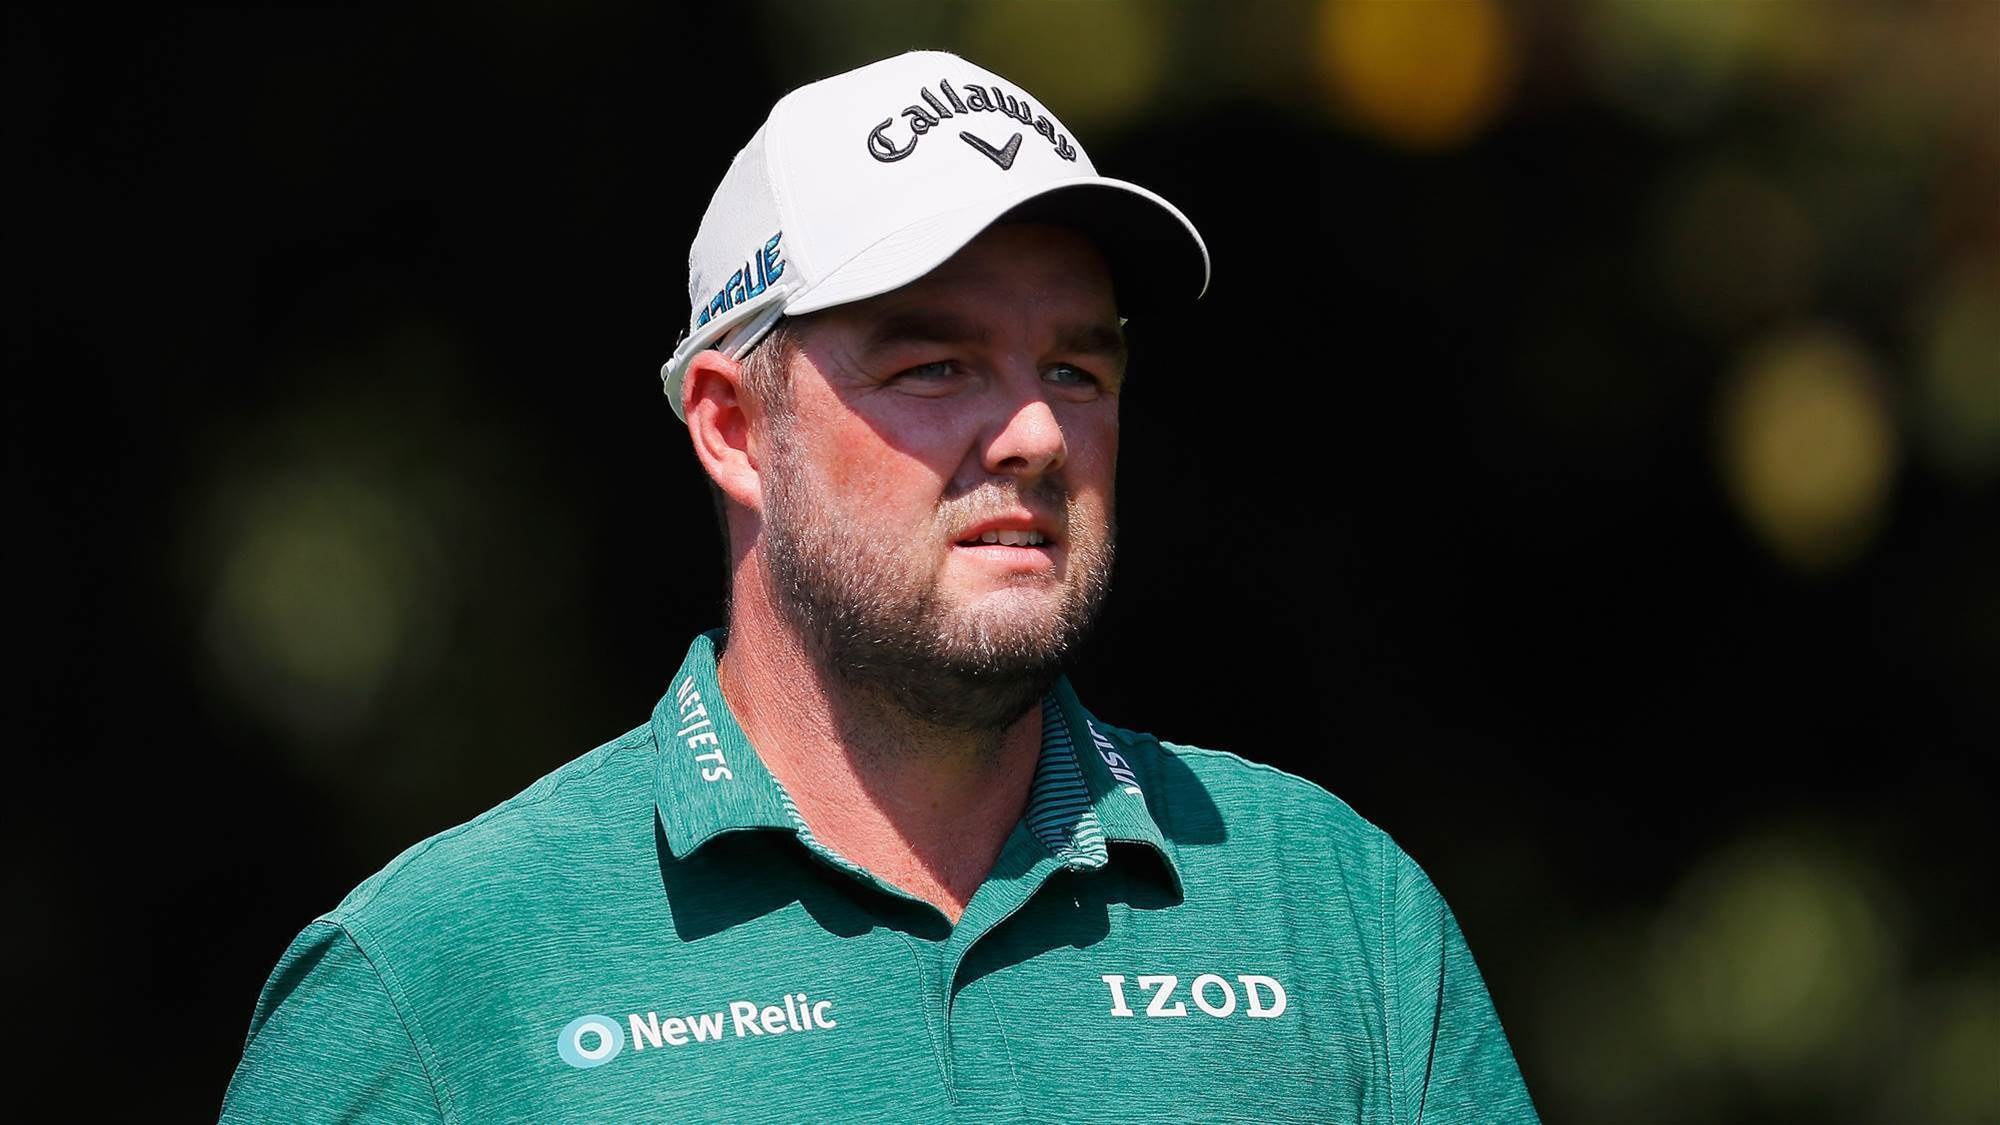 Leishman chasing back-to-back wins